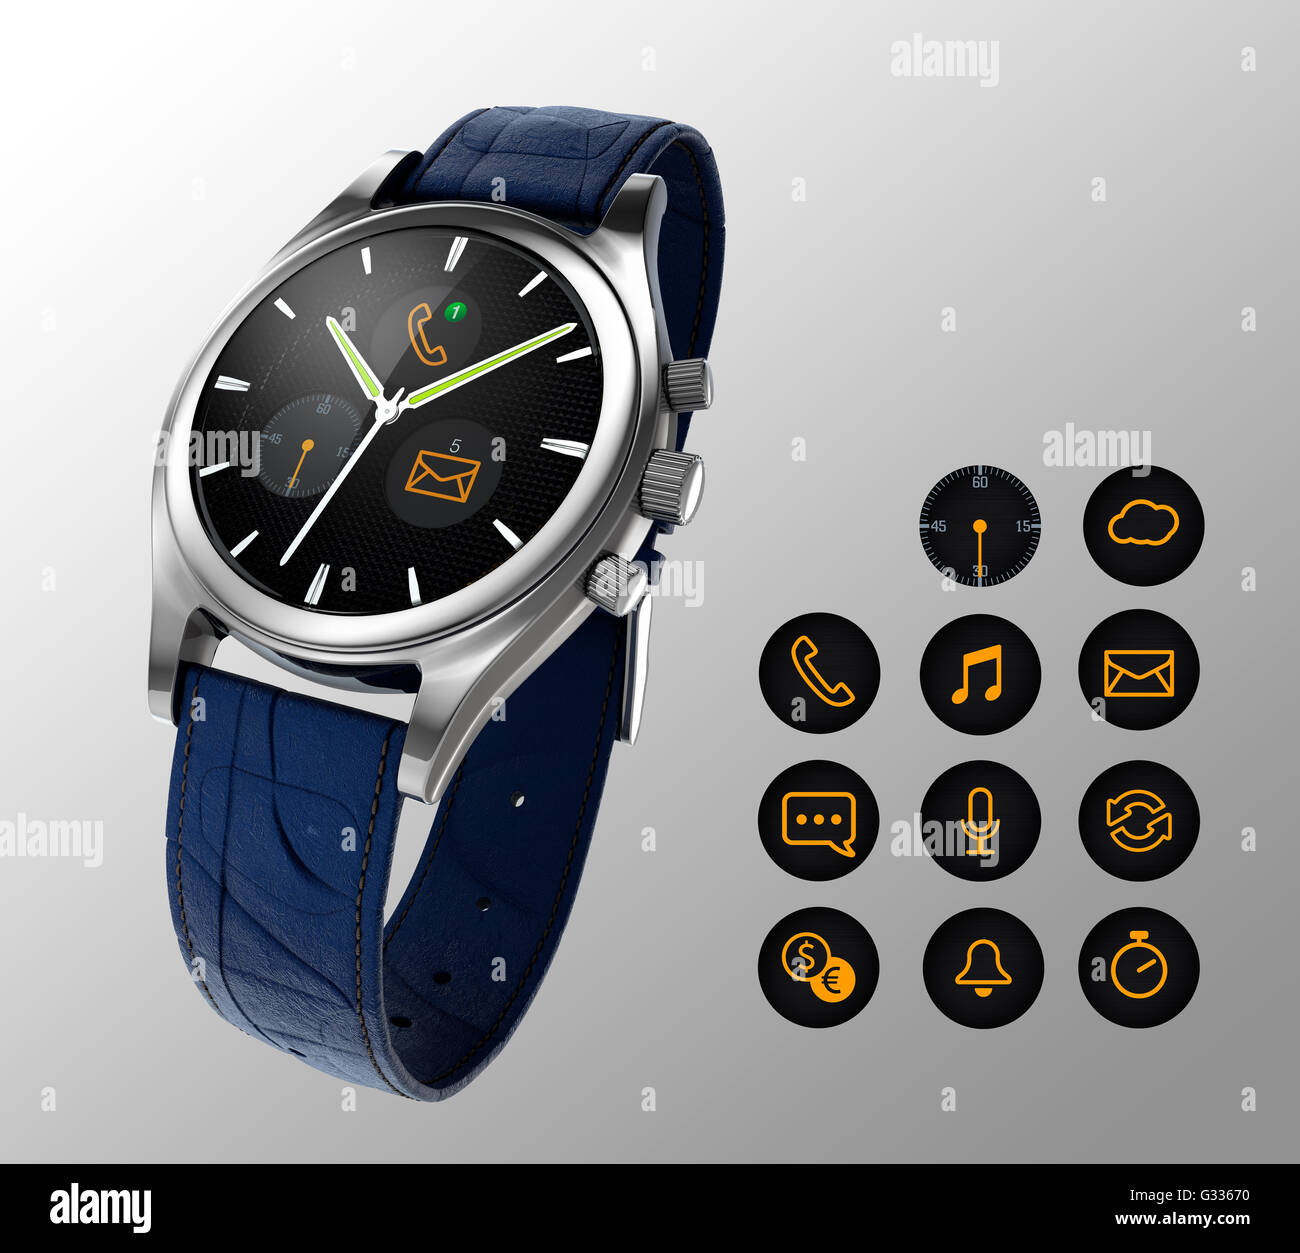 Analogue wristwatch with digital touch screen.  Smart watch concept. - Stock Image